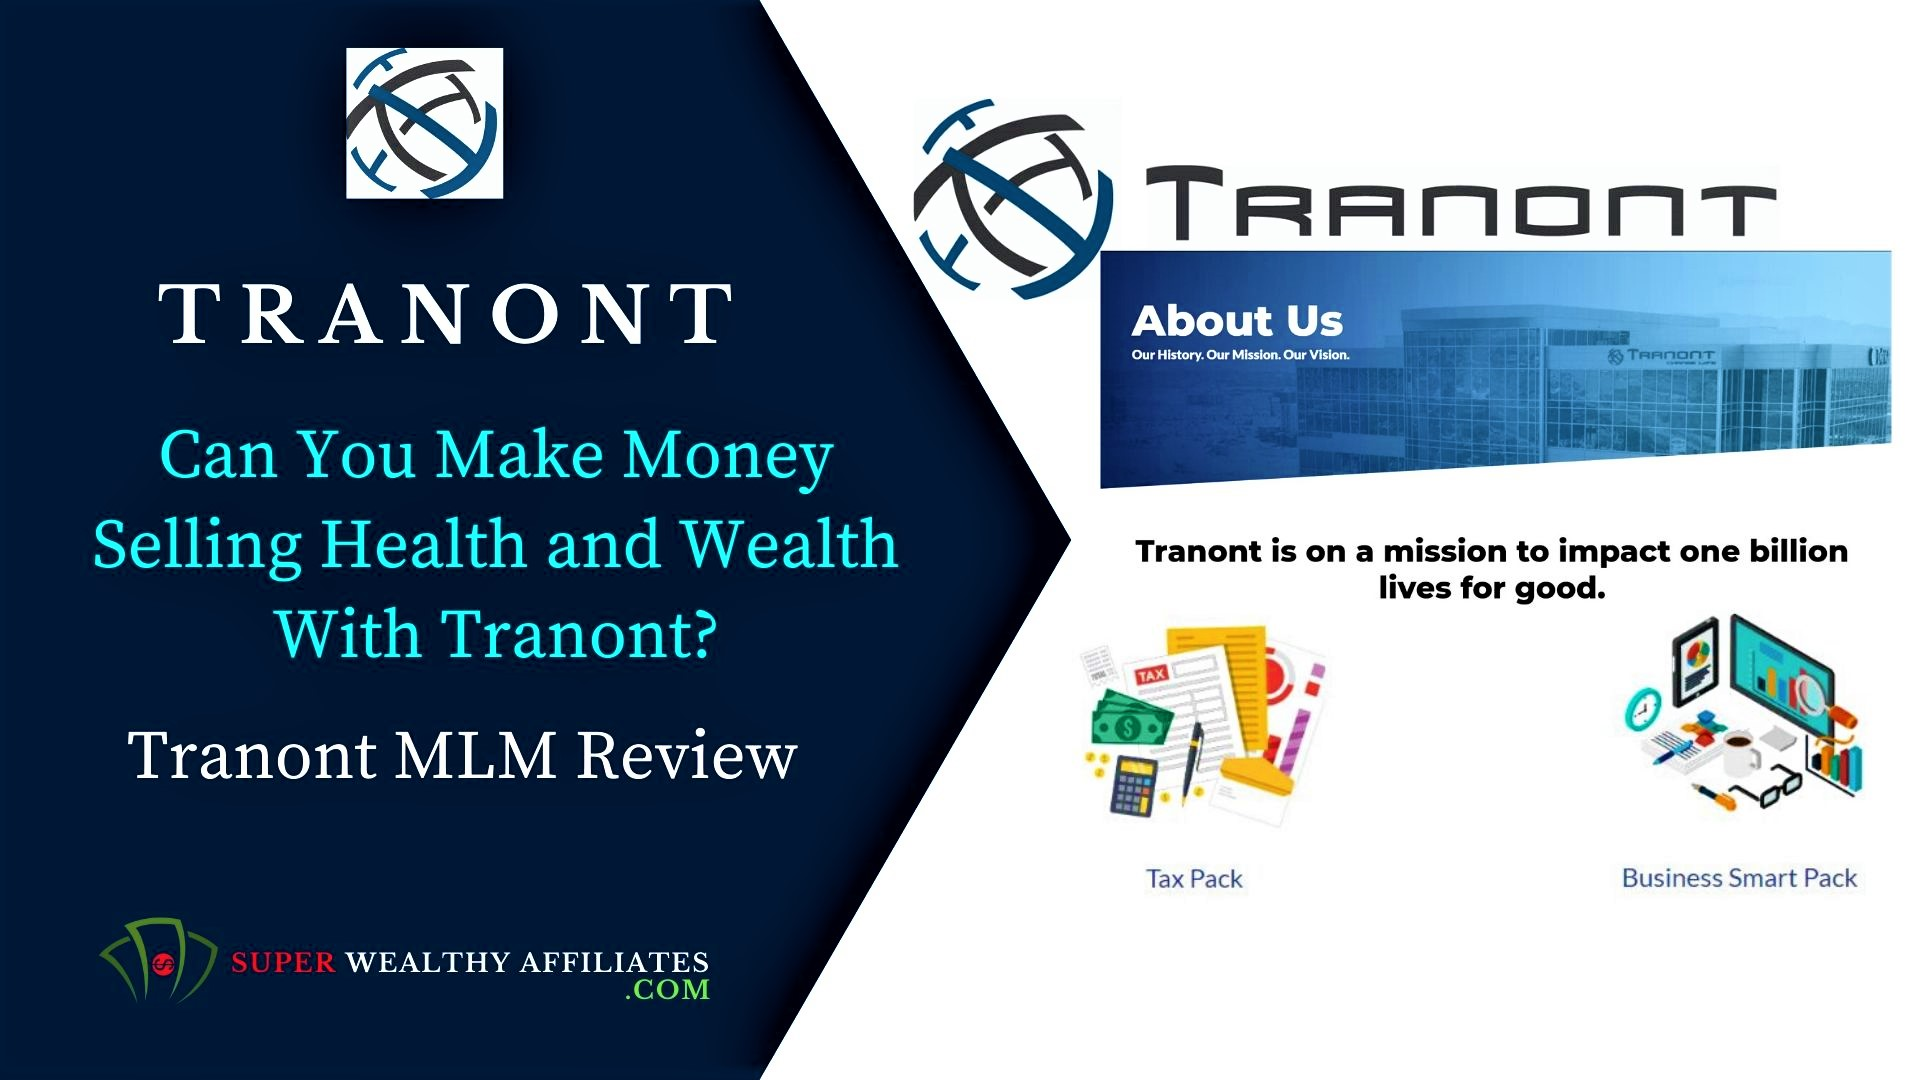 Tranont-Product-MLM-Review.